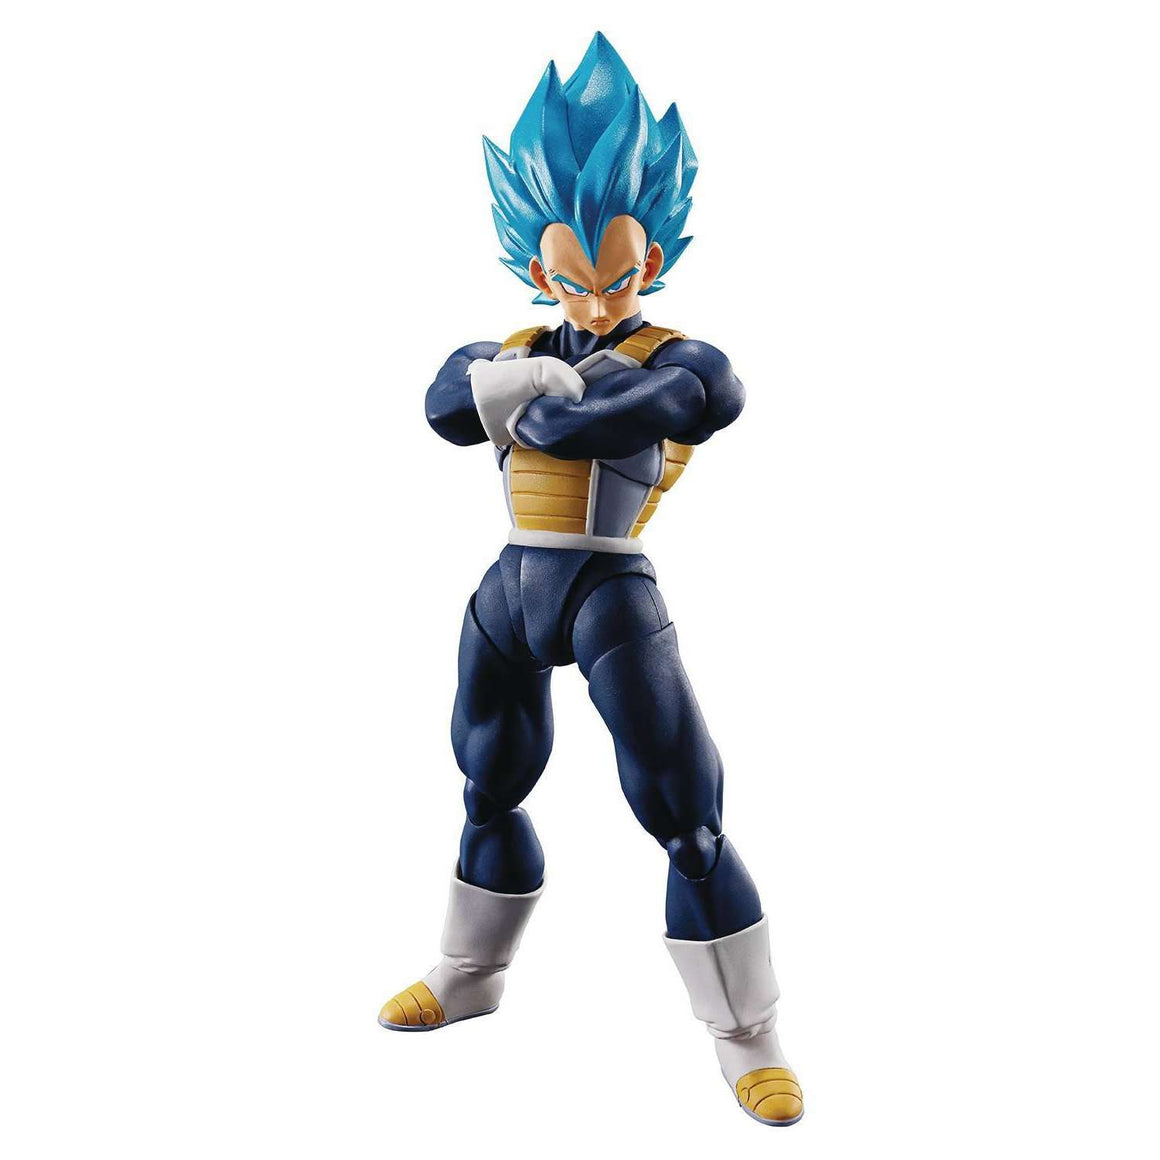 Dragon Ball Super: Broly (Movie) S.H.Figuarts - Vegeta SSGS (Super Saiyan God) - AUGUST 2019